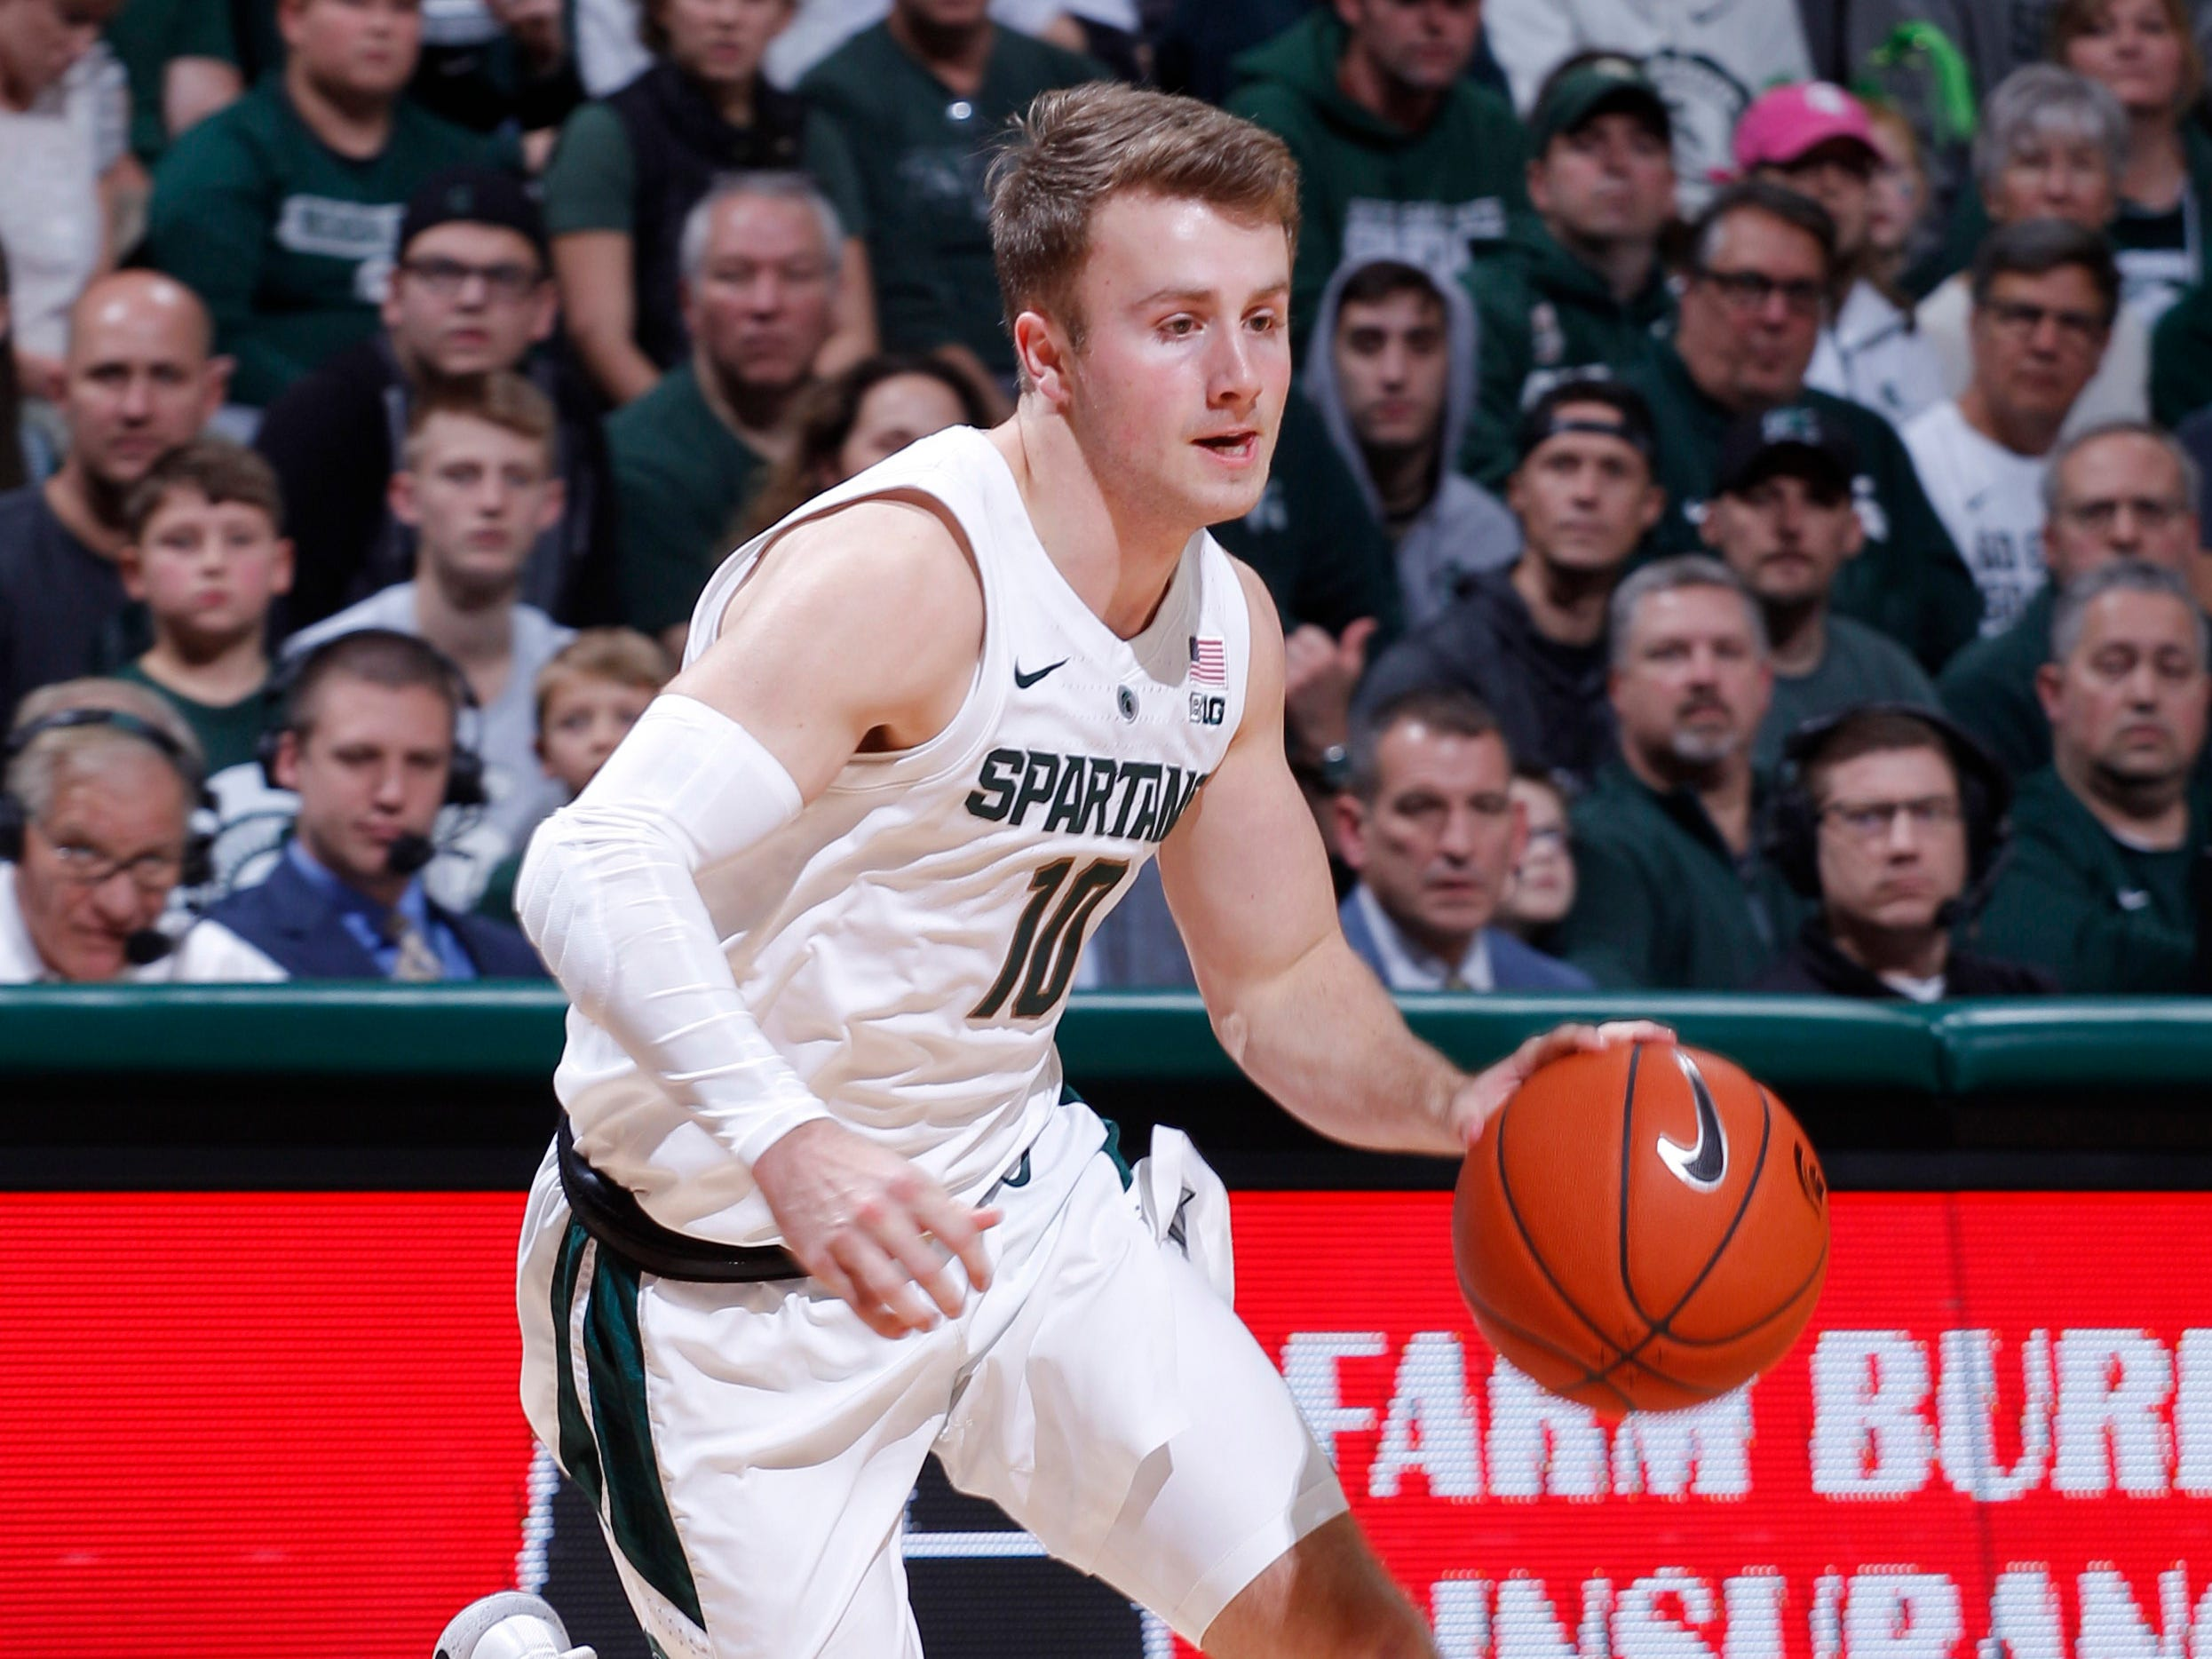 Michigan State's Jack Hoiberg drives against Northern Illinois, Saturday, Dec. 29, 2018, in East Lansing, Mich.